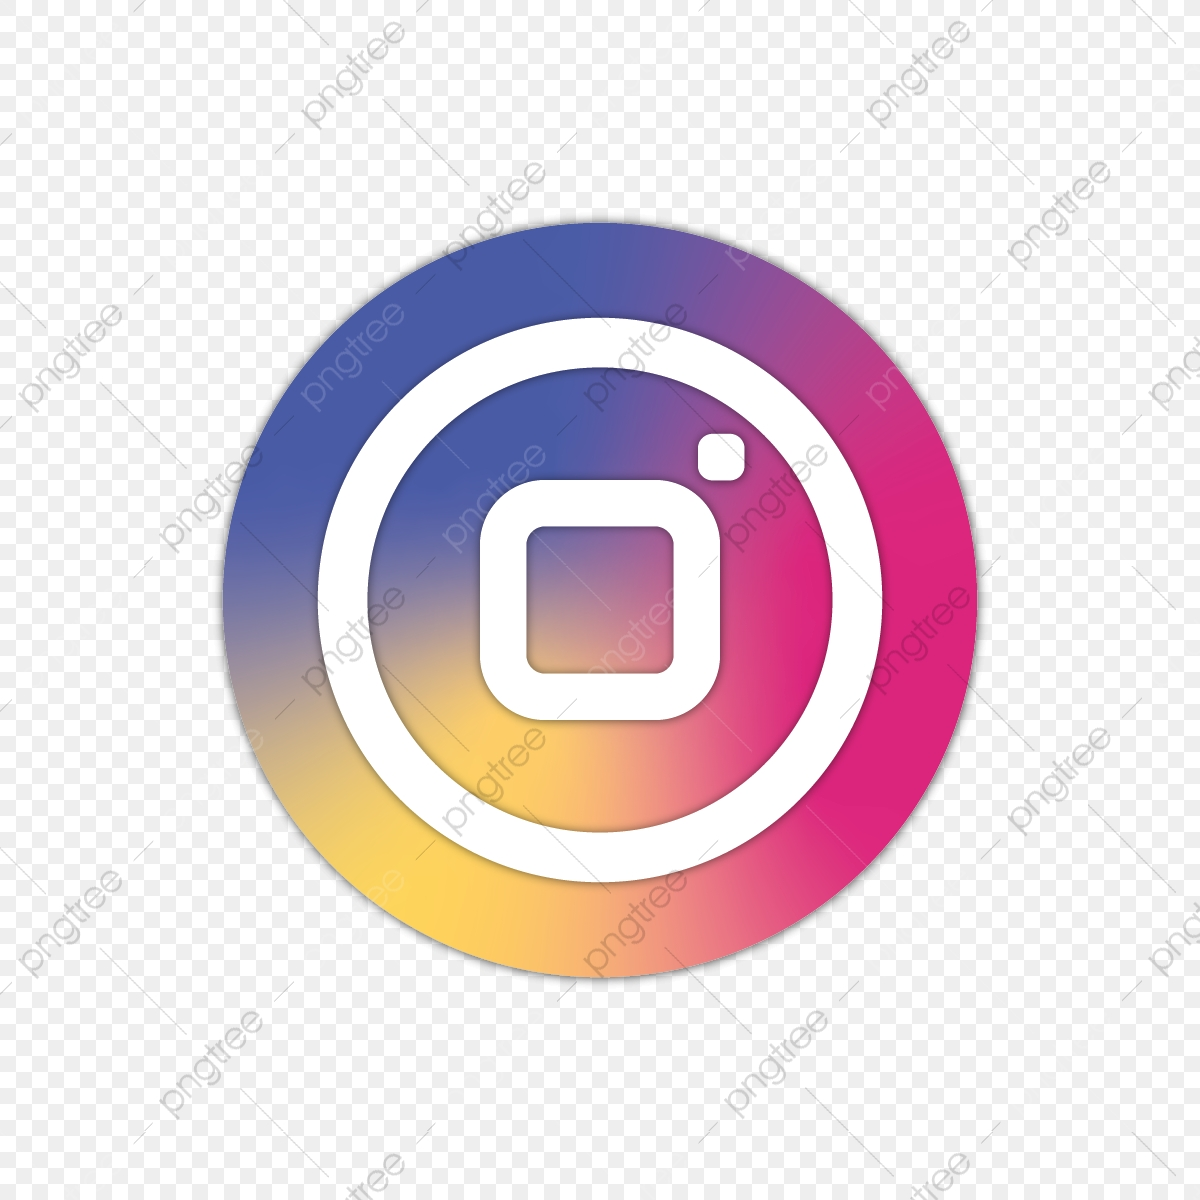 Instagram transparent background. Logo inverse instagral png